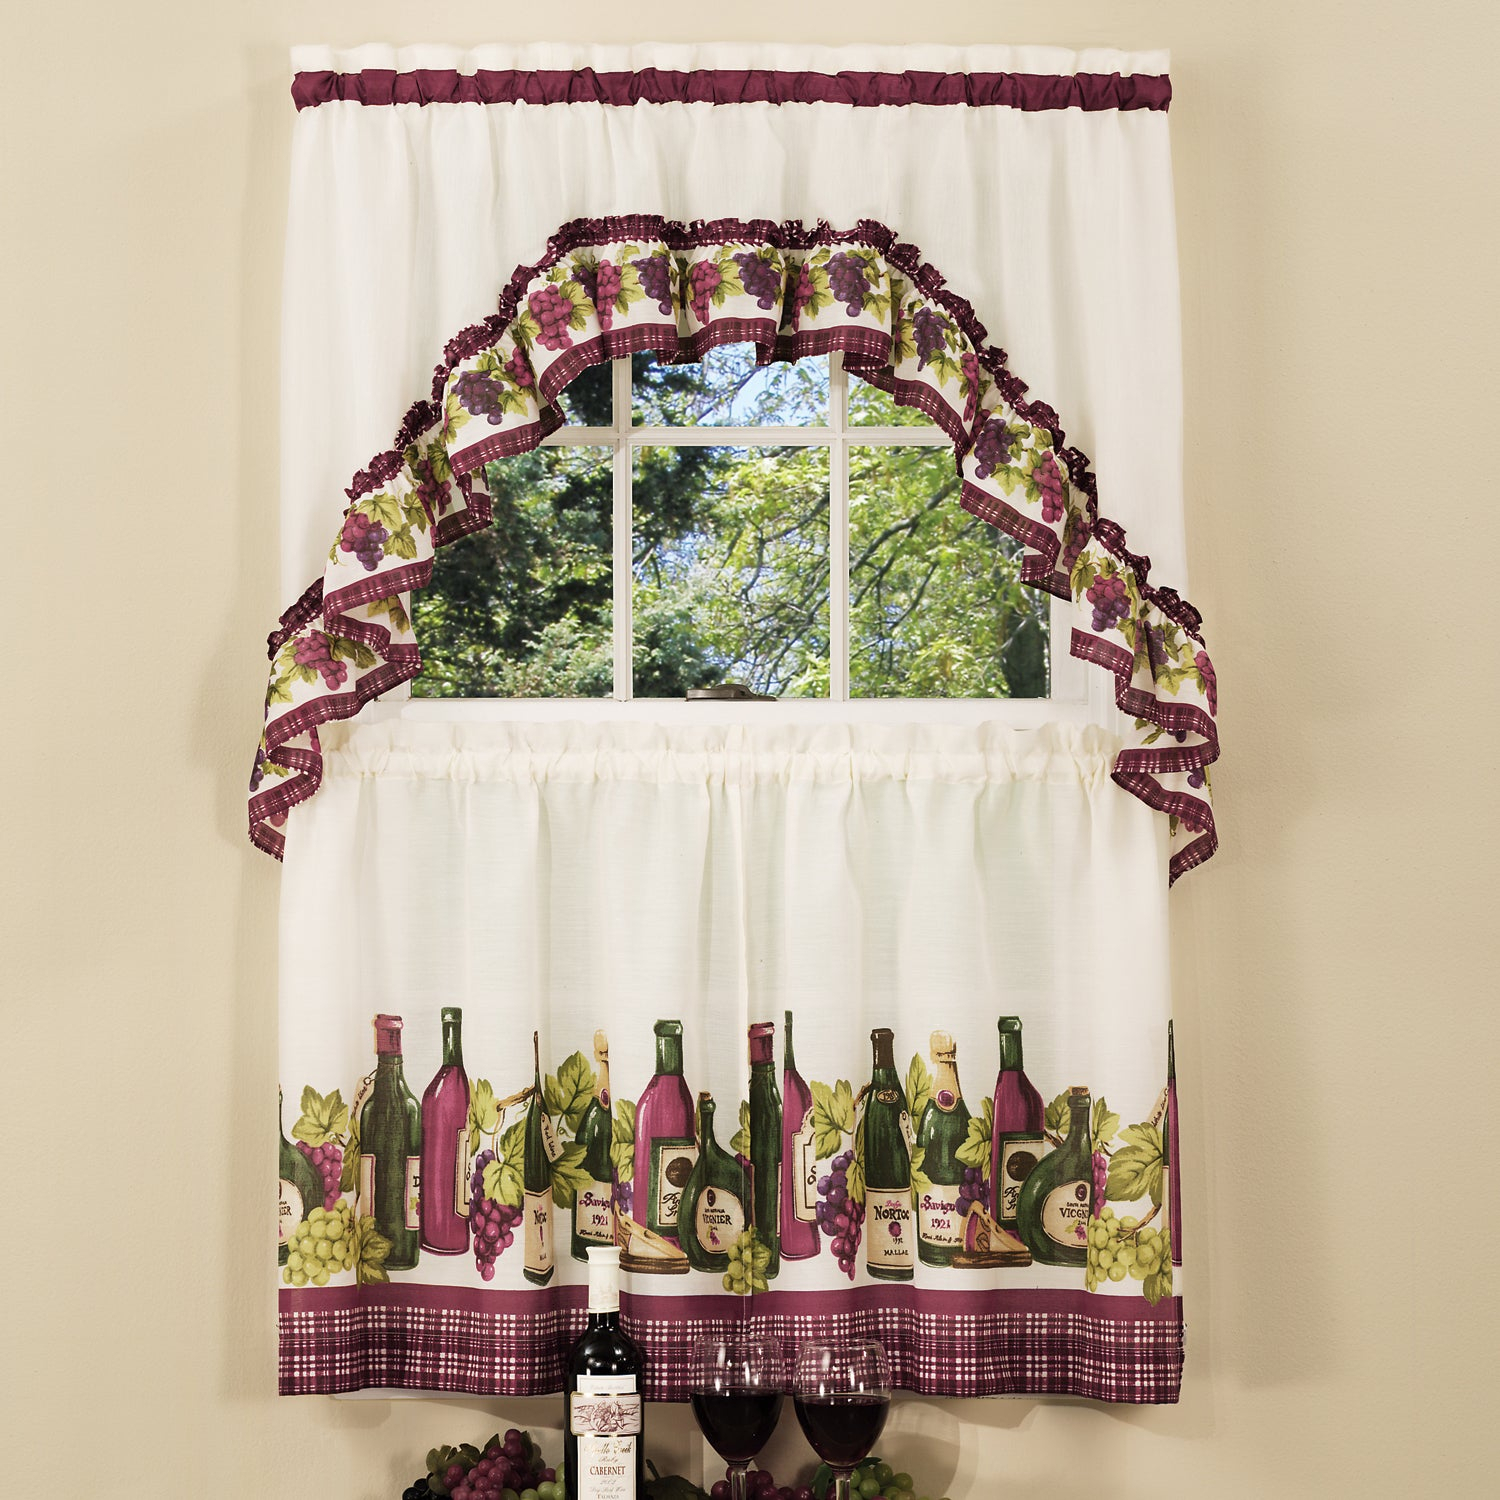 Traditional Two Piece Tailored Tier And Swag Window Curtains Set With Classic French Wine And Grapes Print – 36 Inch For Chocolate 5 Piece Curtain Tier And Swag Sets (View 18 of 20)